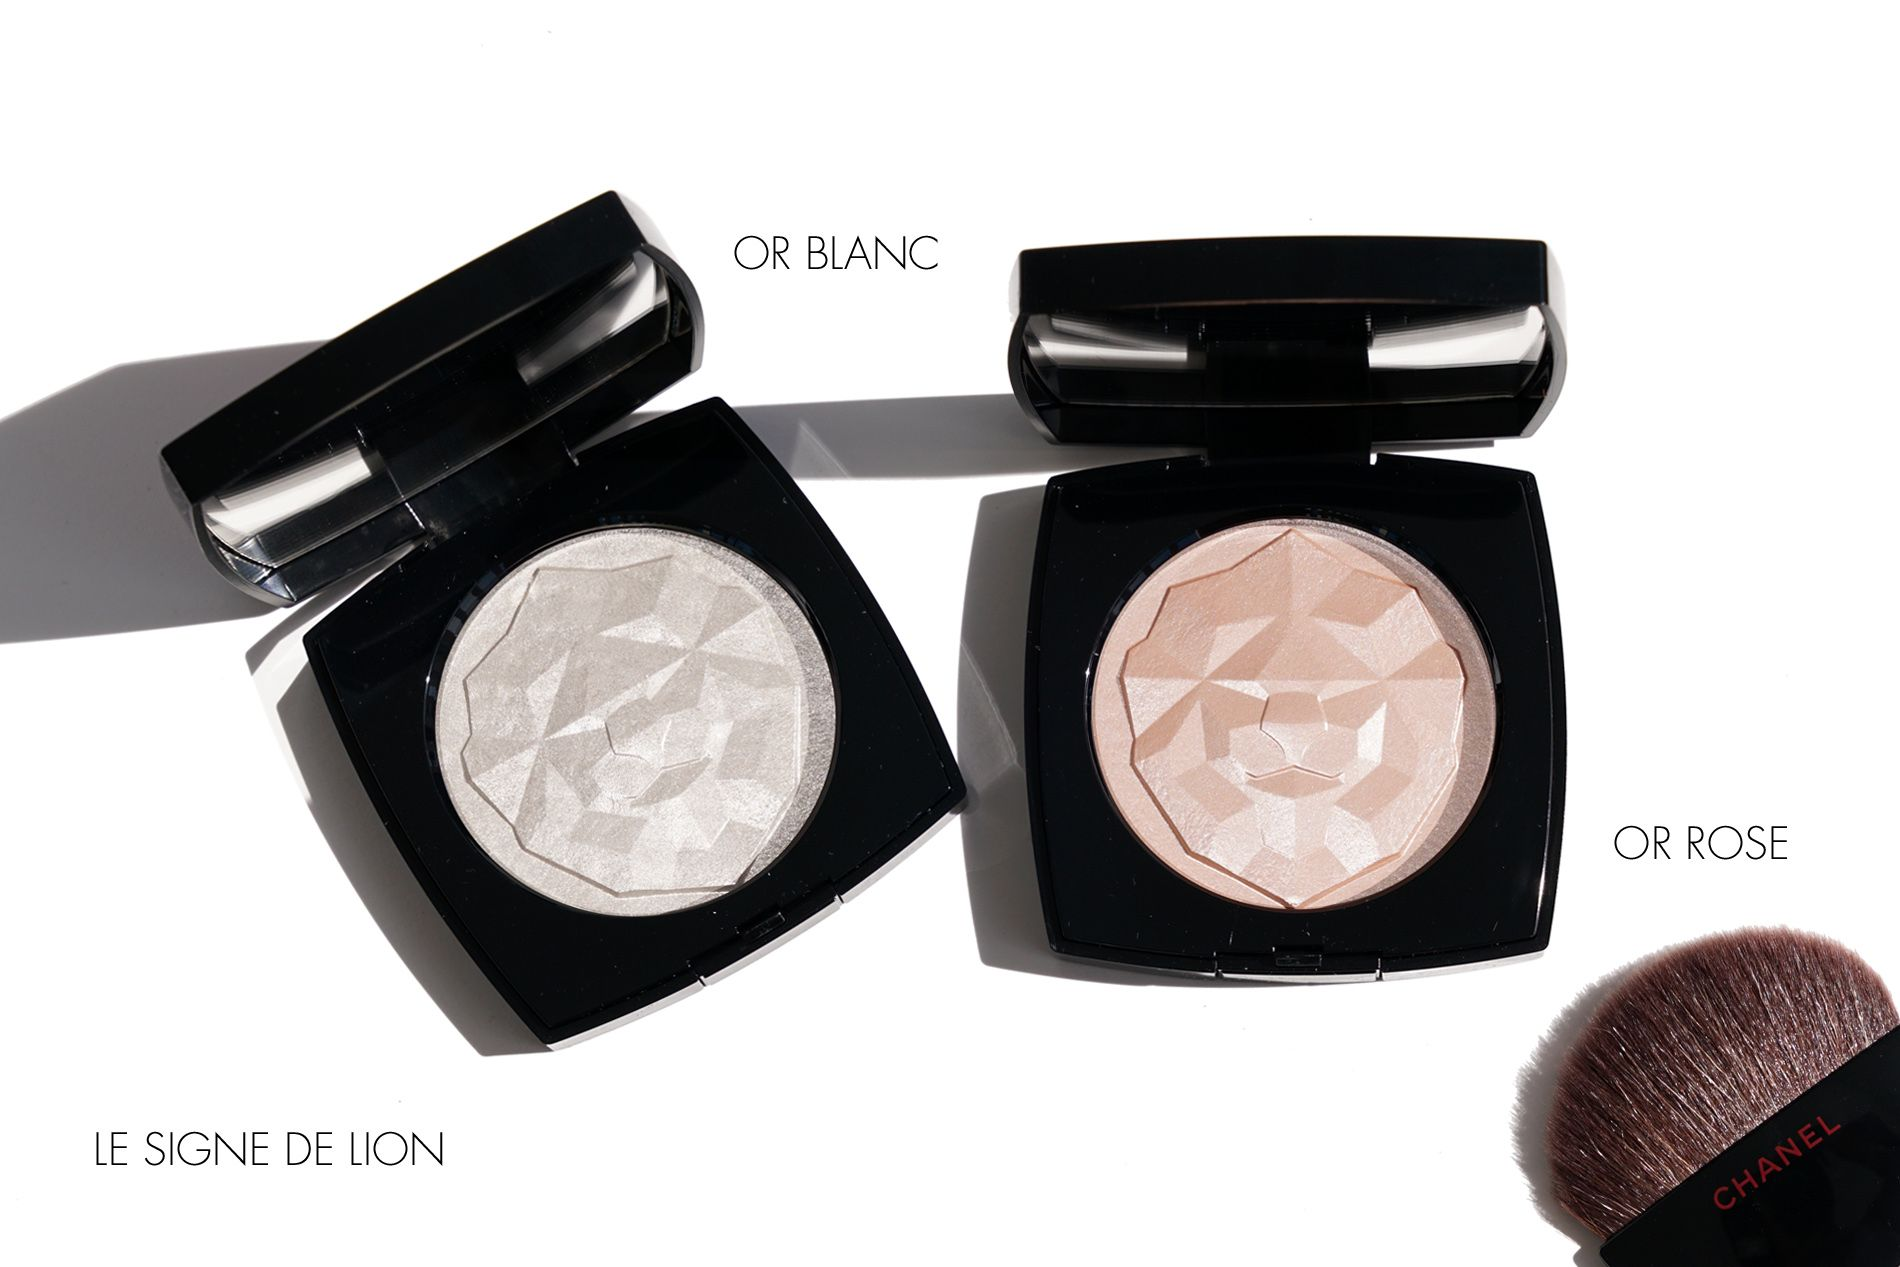 8648aec0a8 Chanel Le Signe du Lion Illuminating Powder Review | The Beauty Look ...